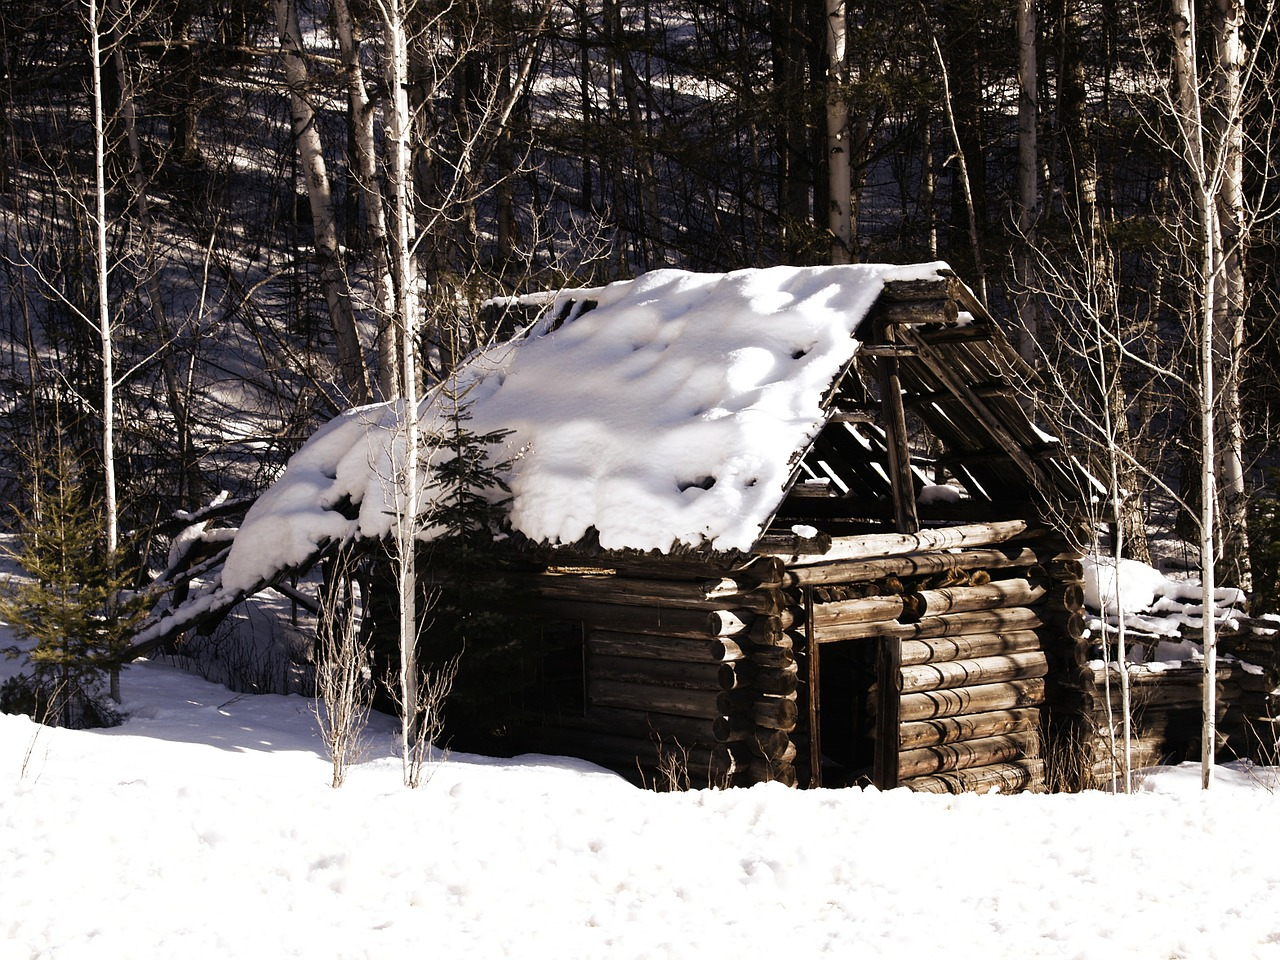 old log cabin,winter,snow,nature,log,cabin,house,cottage,rustic,country,architecture,christmas,outdoor,countryside,timber,living,village,outdoors,scenic,frozen,free pictures, free photos, free images, royalty free, free illustrations, public domain